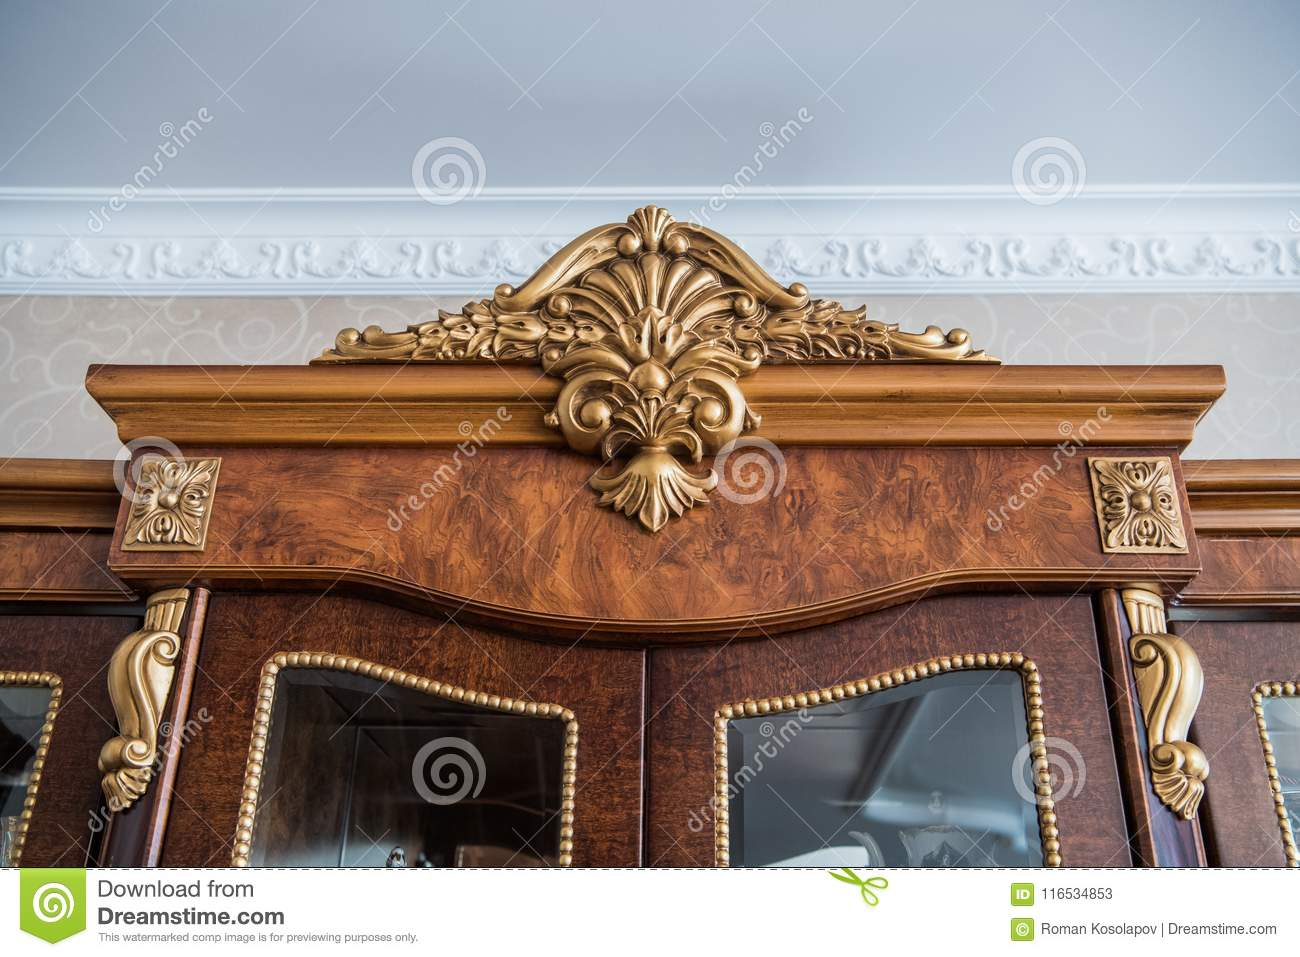 Download Luxury Cupboard With Stucco Mouldings. Vintage Woodworking And  Finishing On Antique Furniture. Stock - Luxury Cupboard With Stucco Mouldings. Vintage Woodworking And